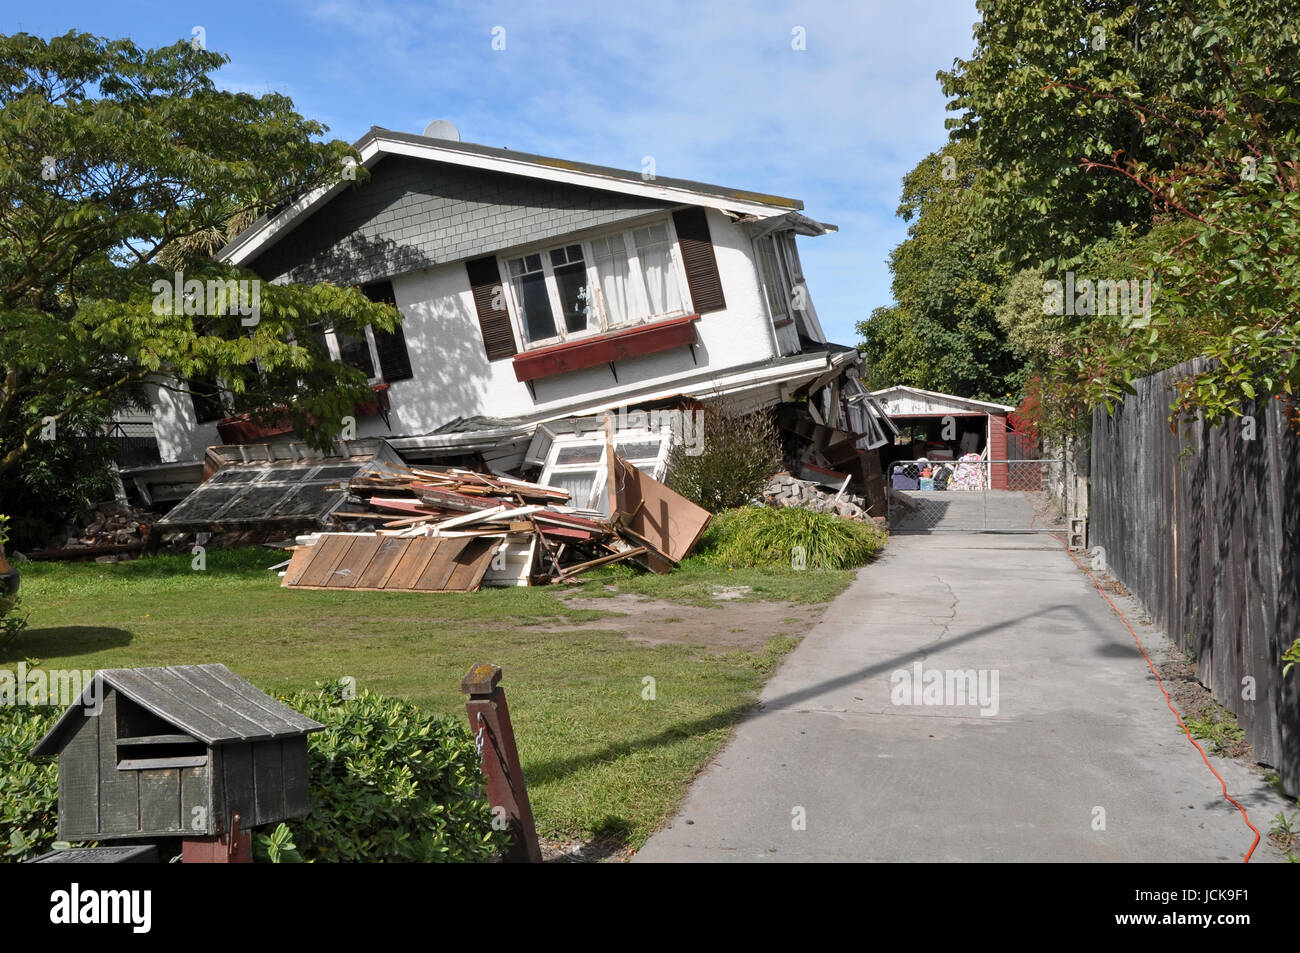 Christchurch, New Zealand - March 26, 2011: House in Avonside collapses in the largest earthquake Christchurch has Stock Photo